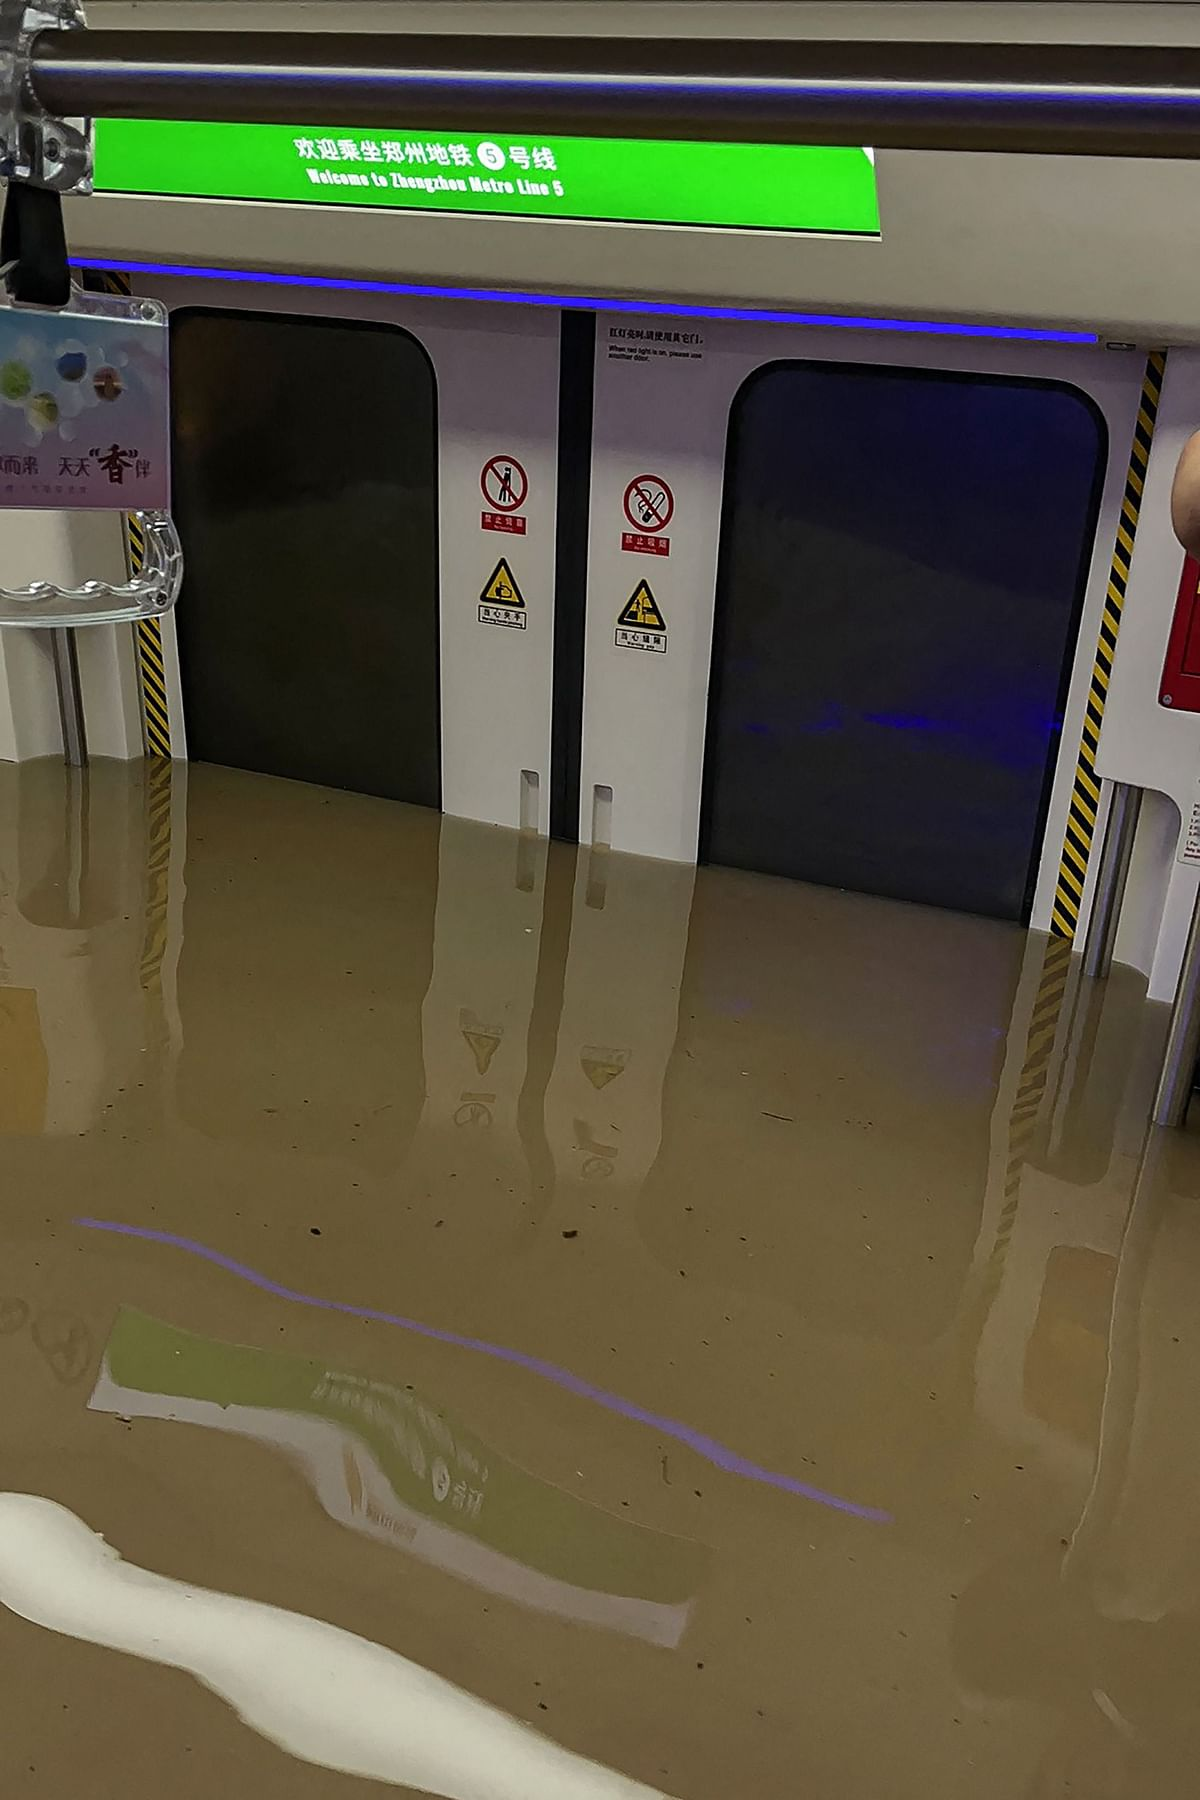 This handout photo taken on July 20, 2021 and received on July 21 courtesy of Weibo user merakiZz-, shows a submerged subway car following heavy rains in Zhengzhou, in Chinas central Henan province.